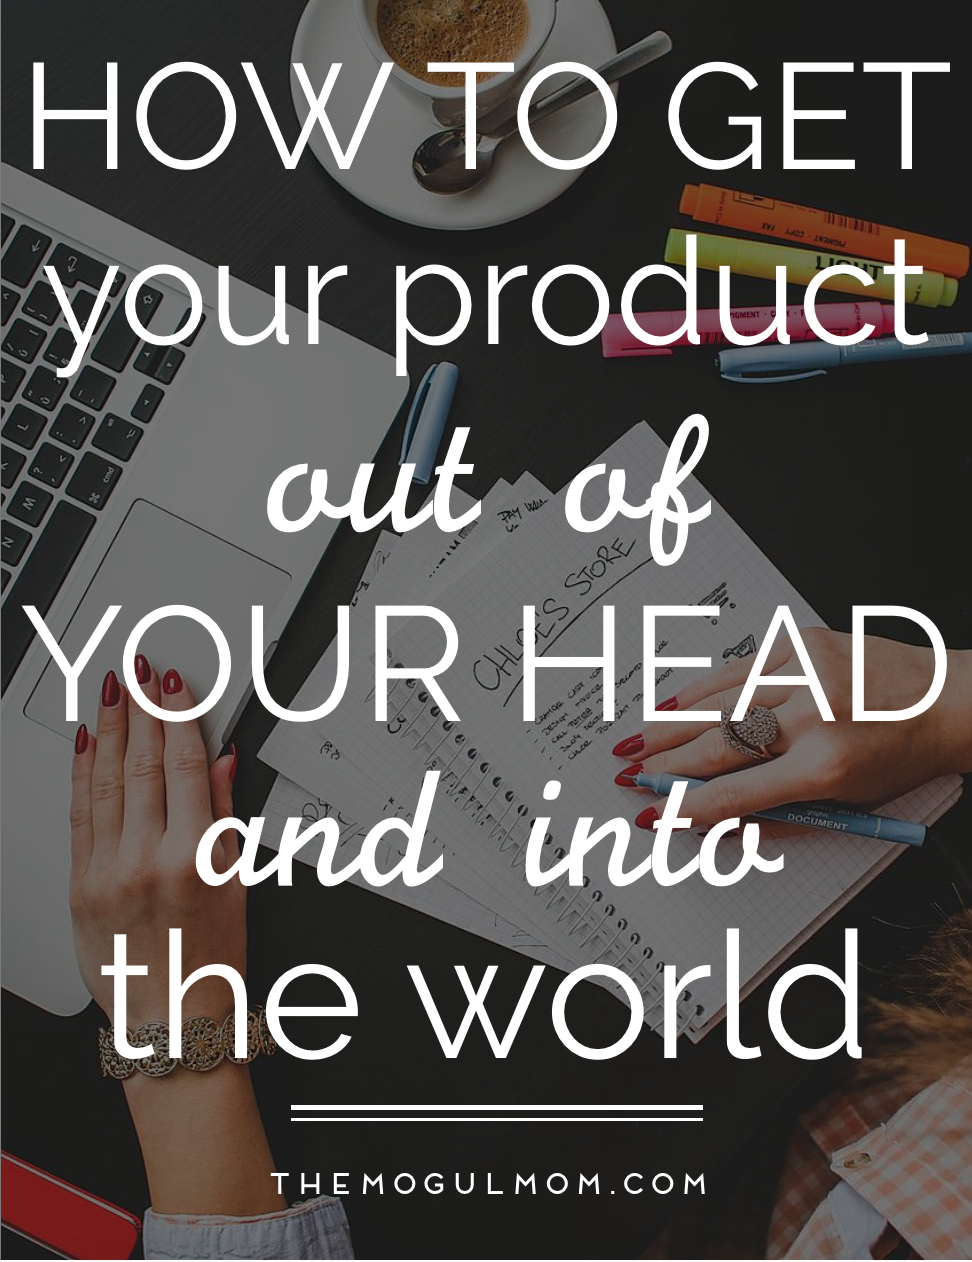 7 Steps to Getting Your Product Out of Your Head and Into the World